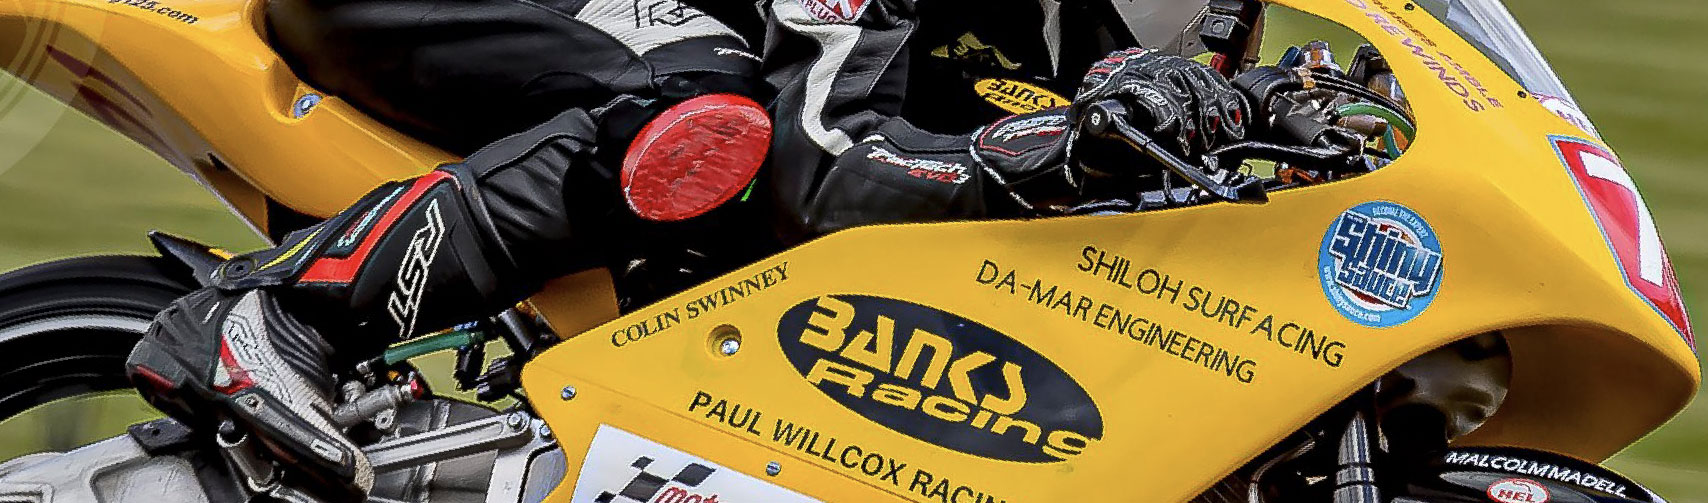 Banks team racing in action banner.